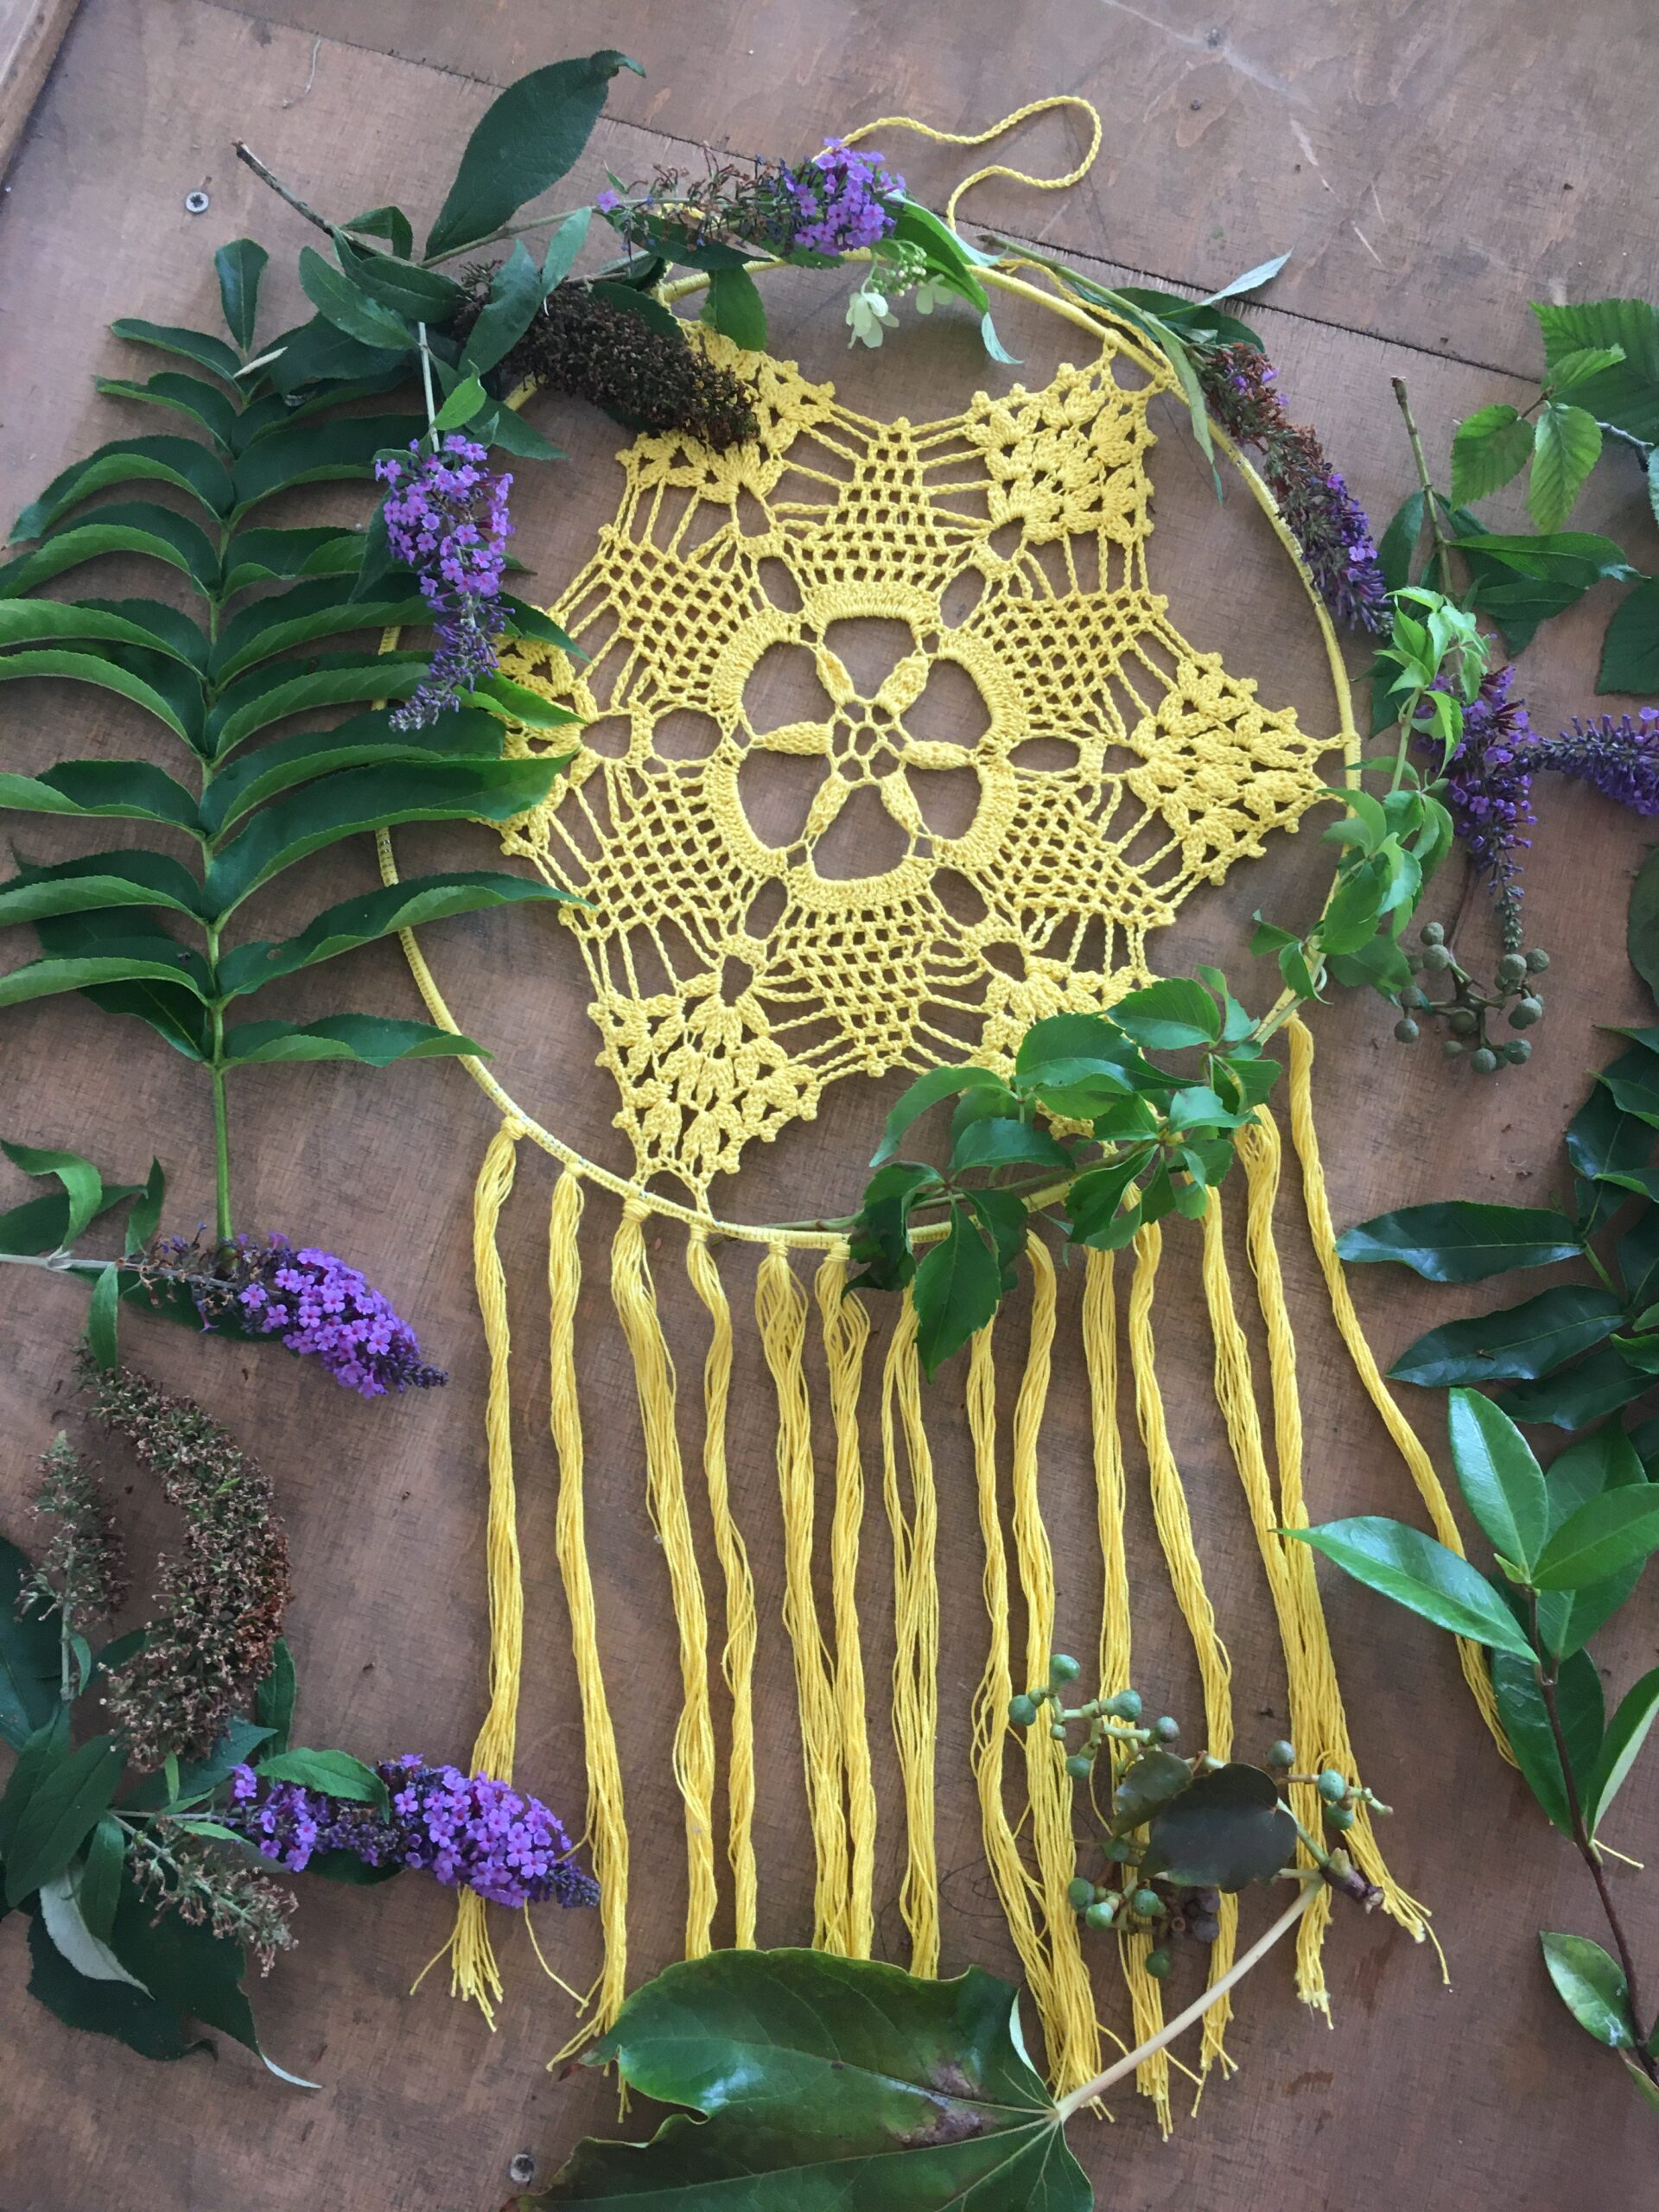 Crochet doily dreamcatcher with fringes. ANAVELLA